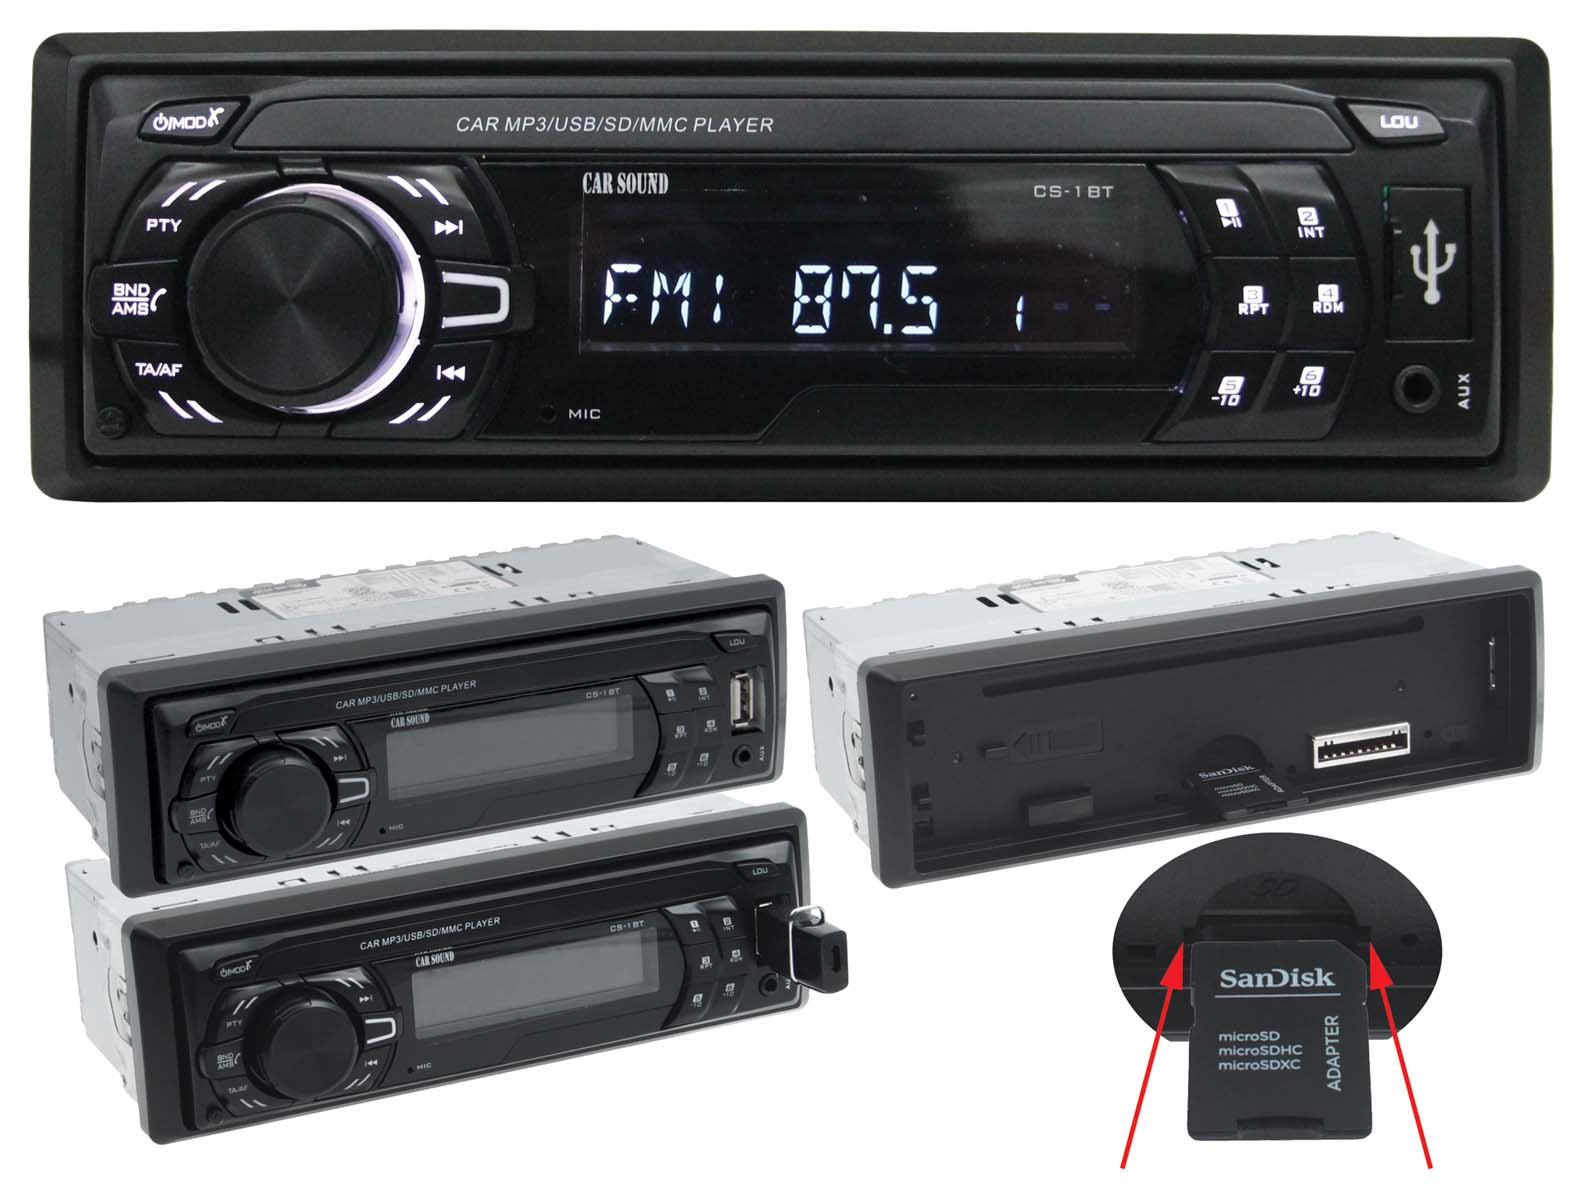 cs-1bt-digital-fm-radio-with-media-player-for-use-in-cars-summer-price-madness